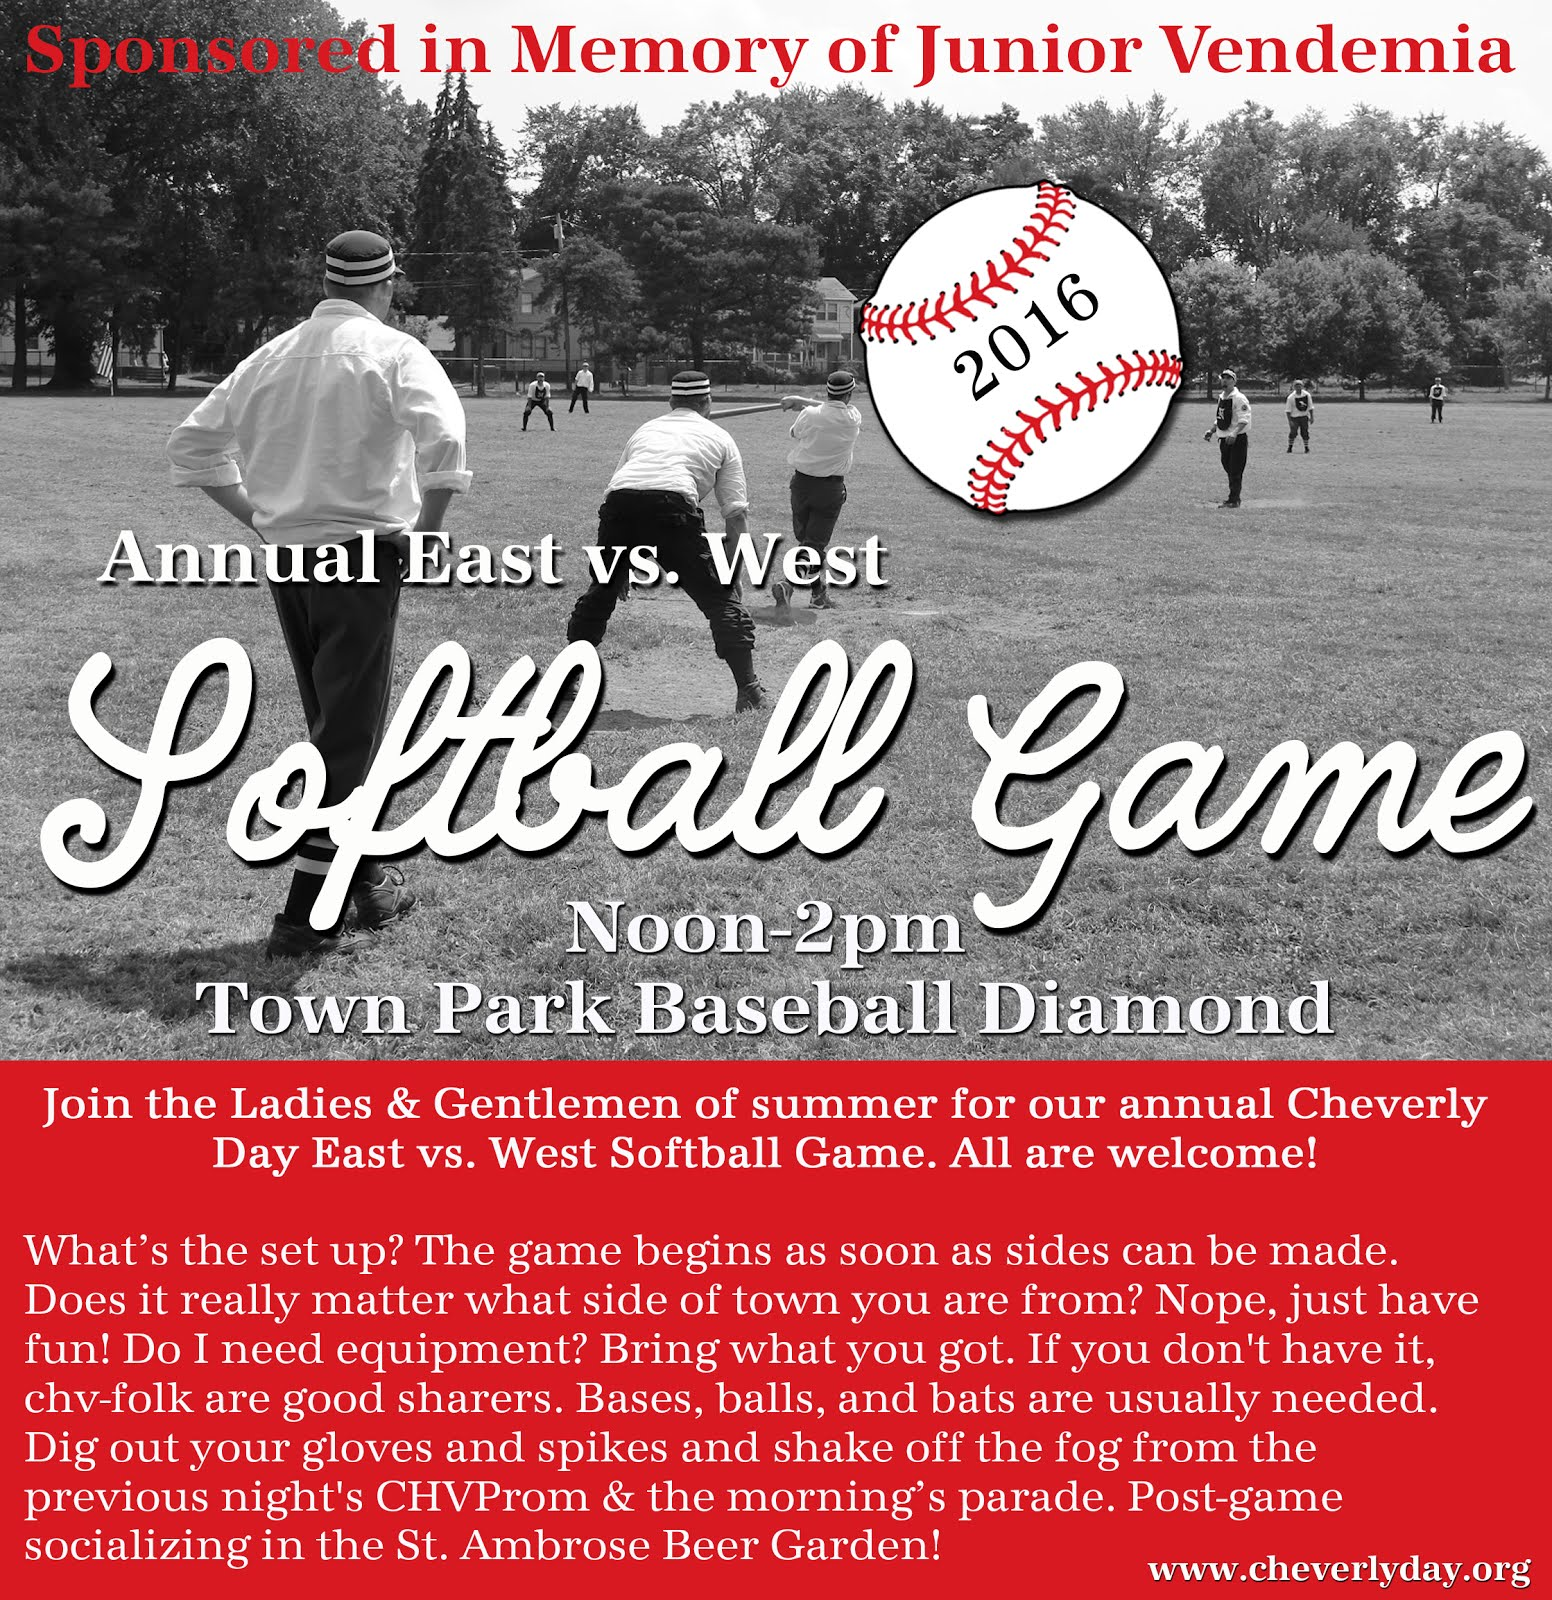 EAST vs WEST Softball Game Sponsored in Memory of Junior Vendemia